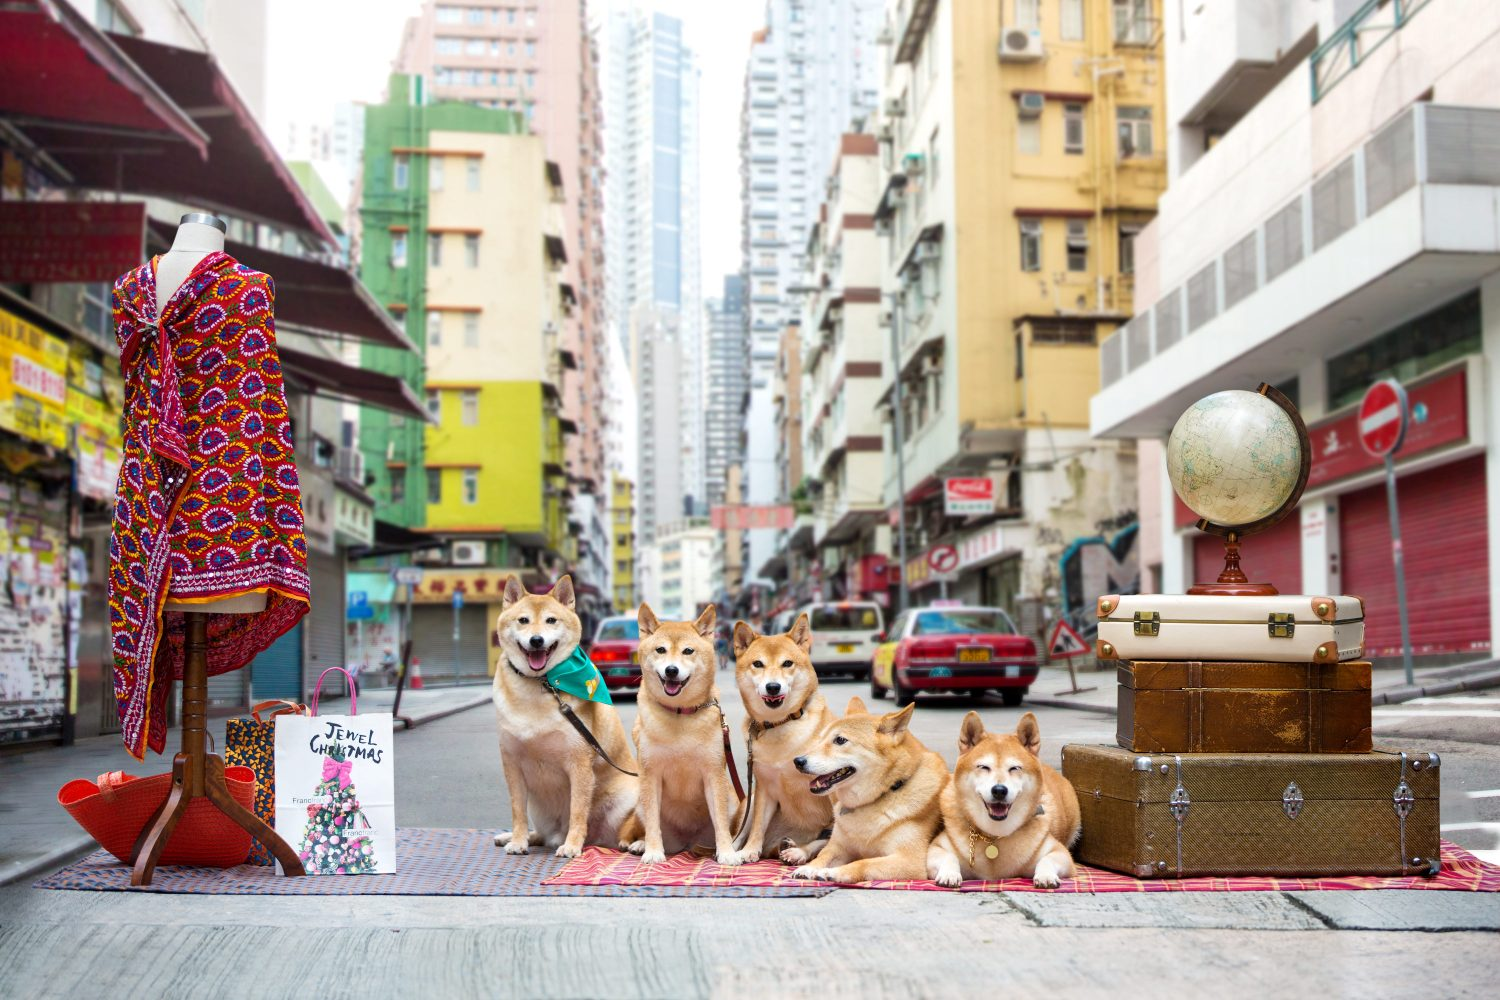 Image from Lonely Planet